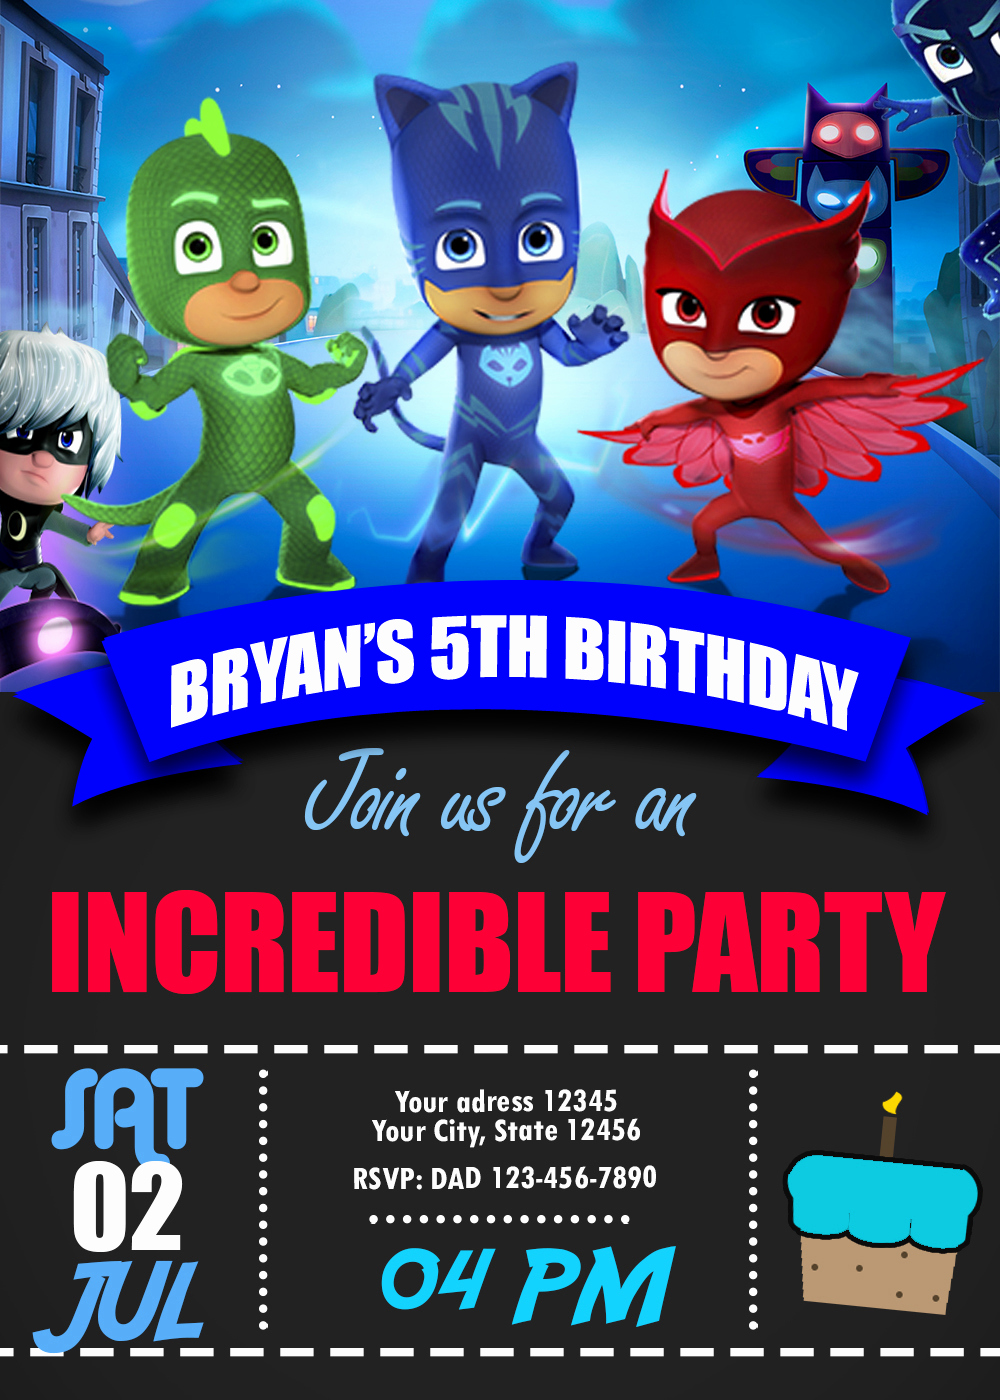 Pj Mask Invitation Template Elegant Blue Catboy Pj Masks Birthday Invitation Oscarsitosroom